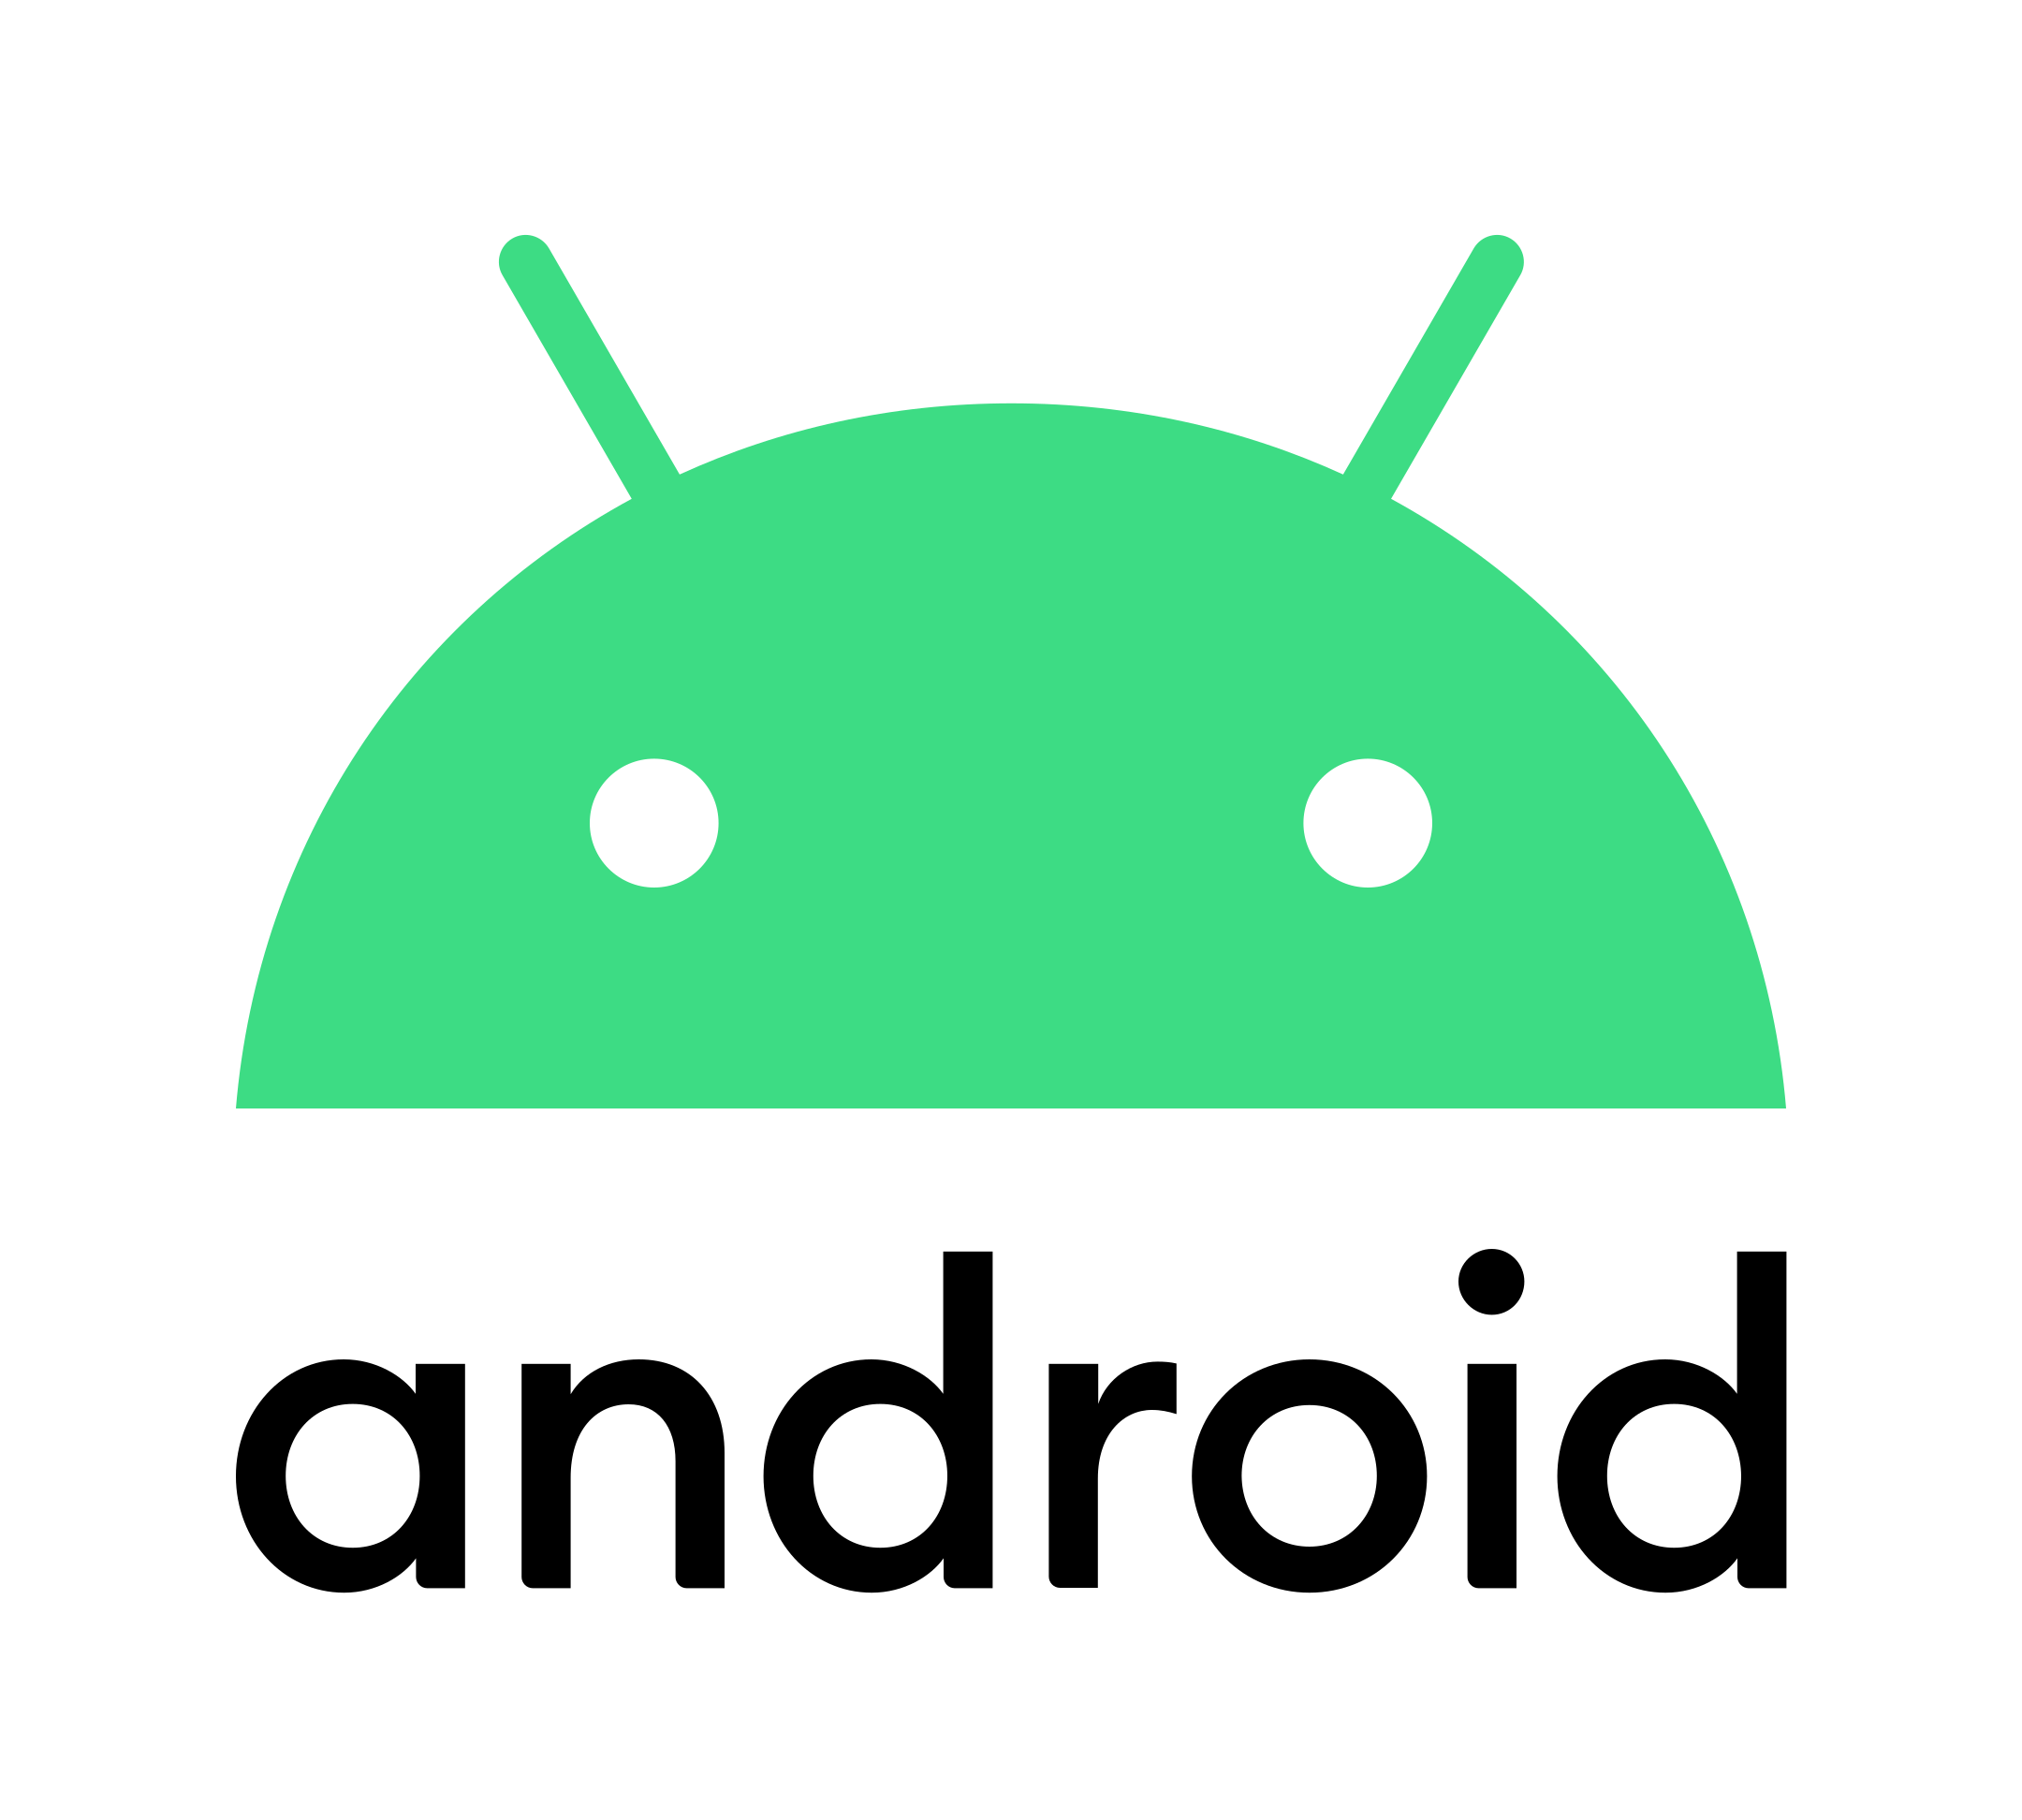 android logo 3 2 - Android Logo